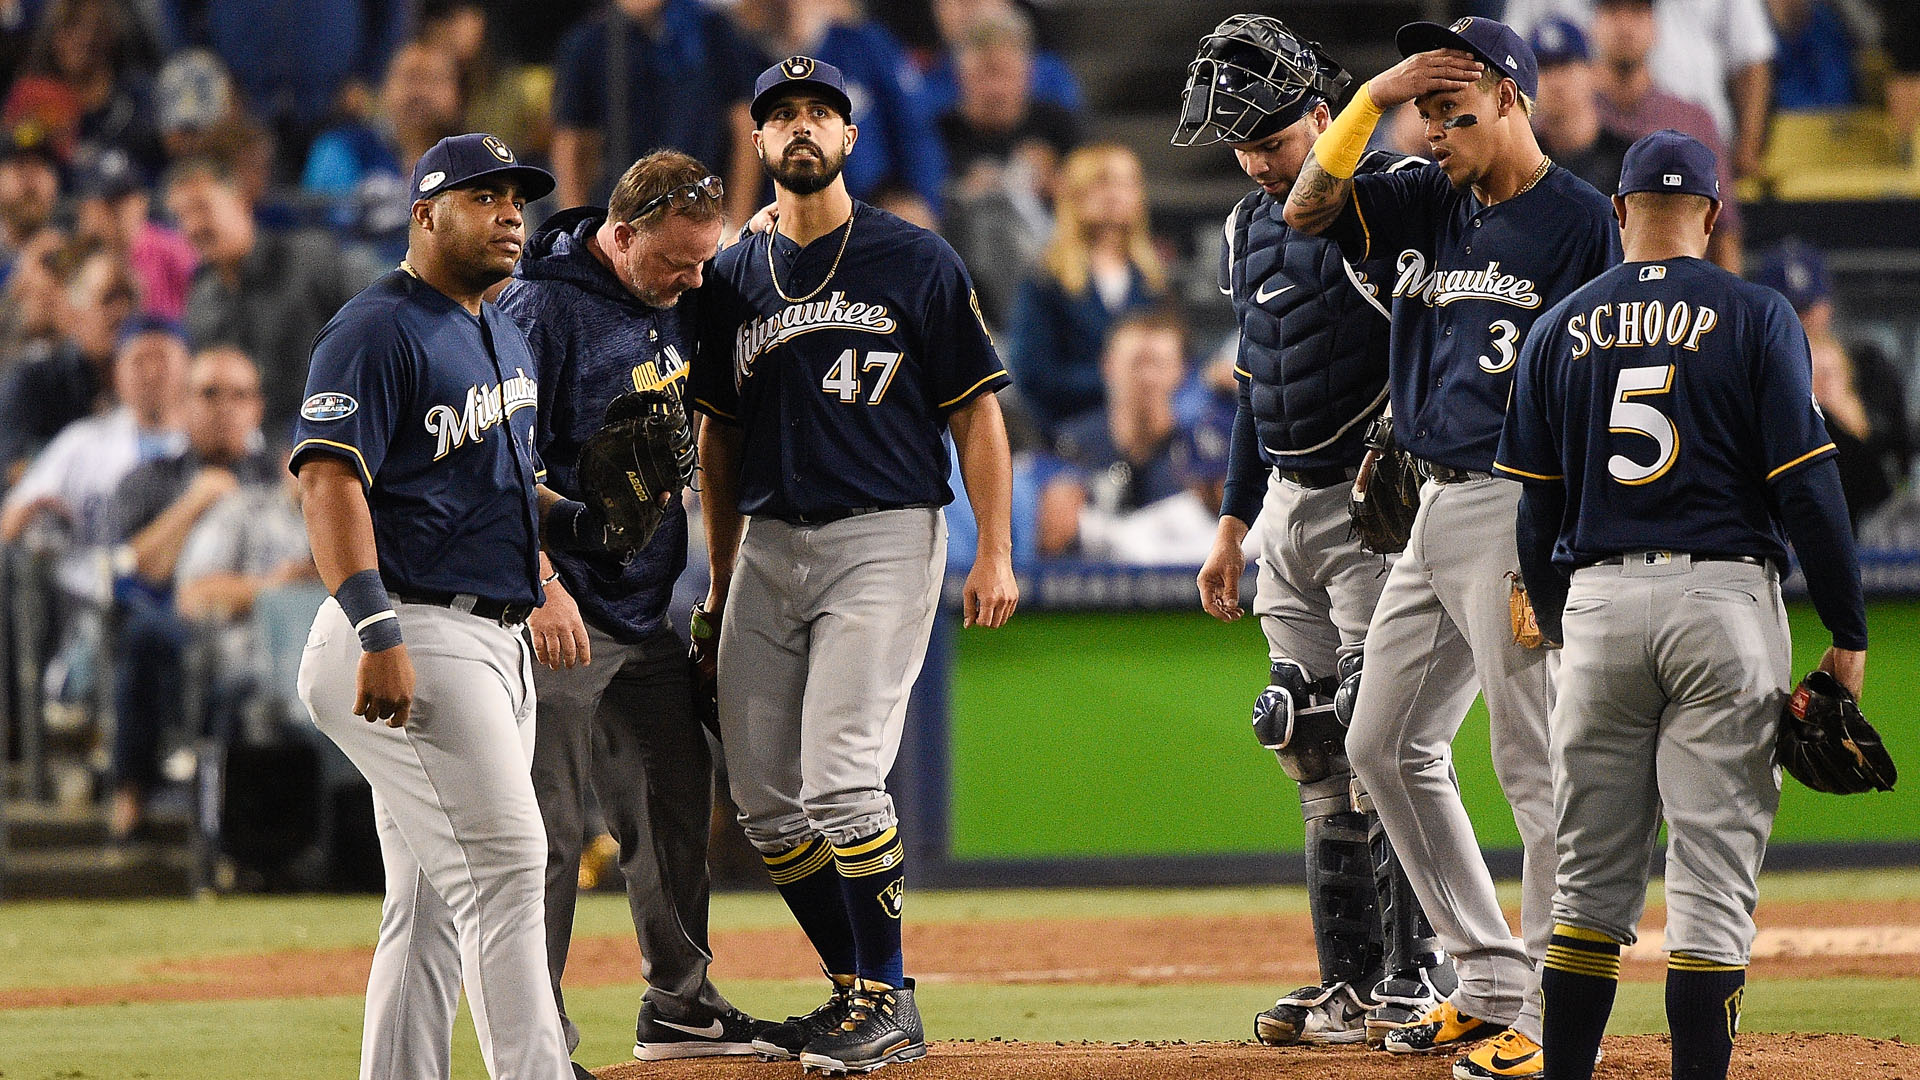 Gio Gonzalez injury update: Brewers P (ankle) done for MLB 2018 postseason, reports say